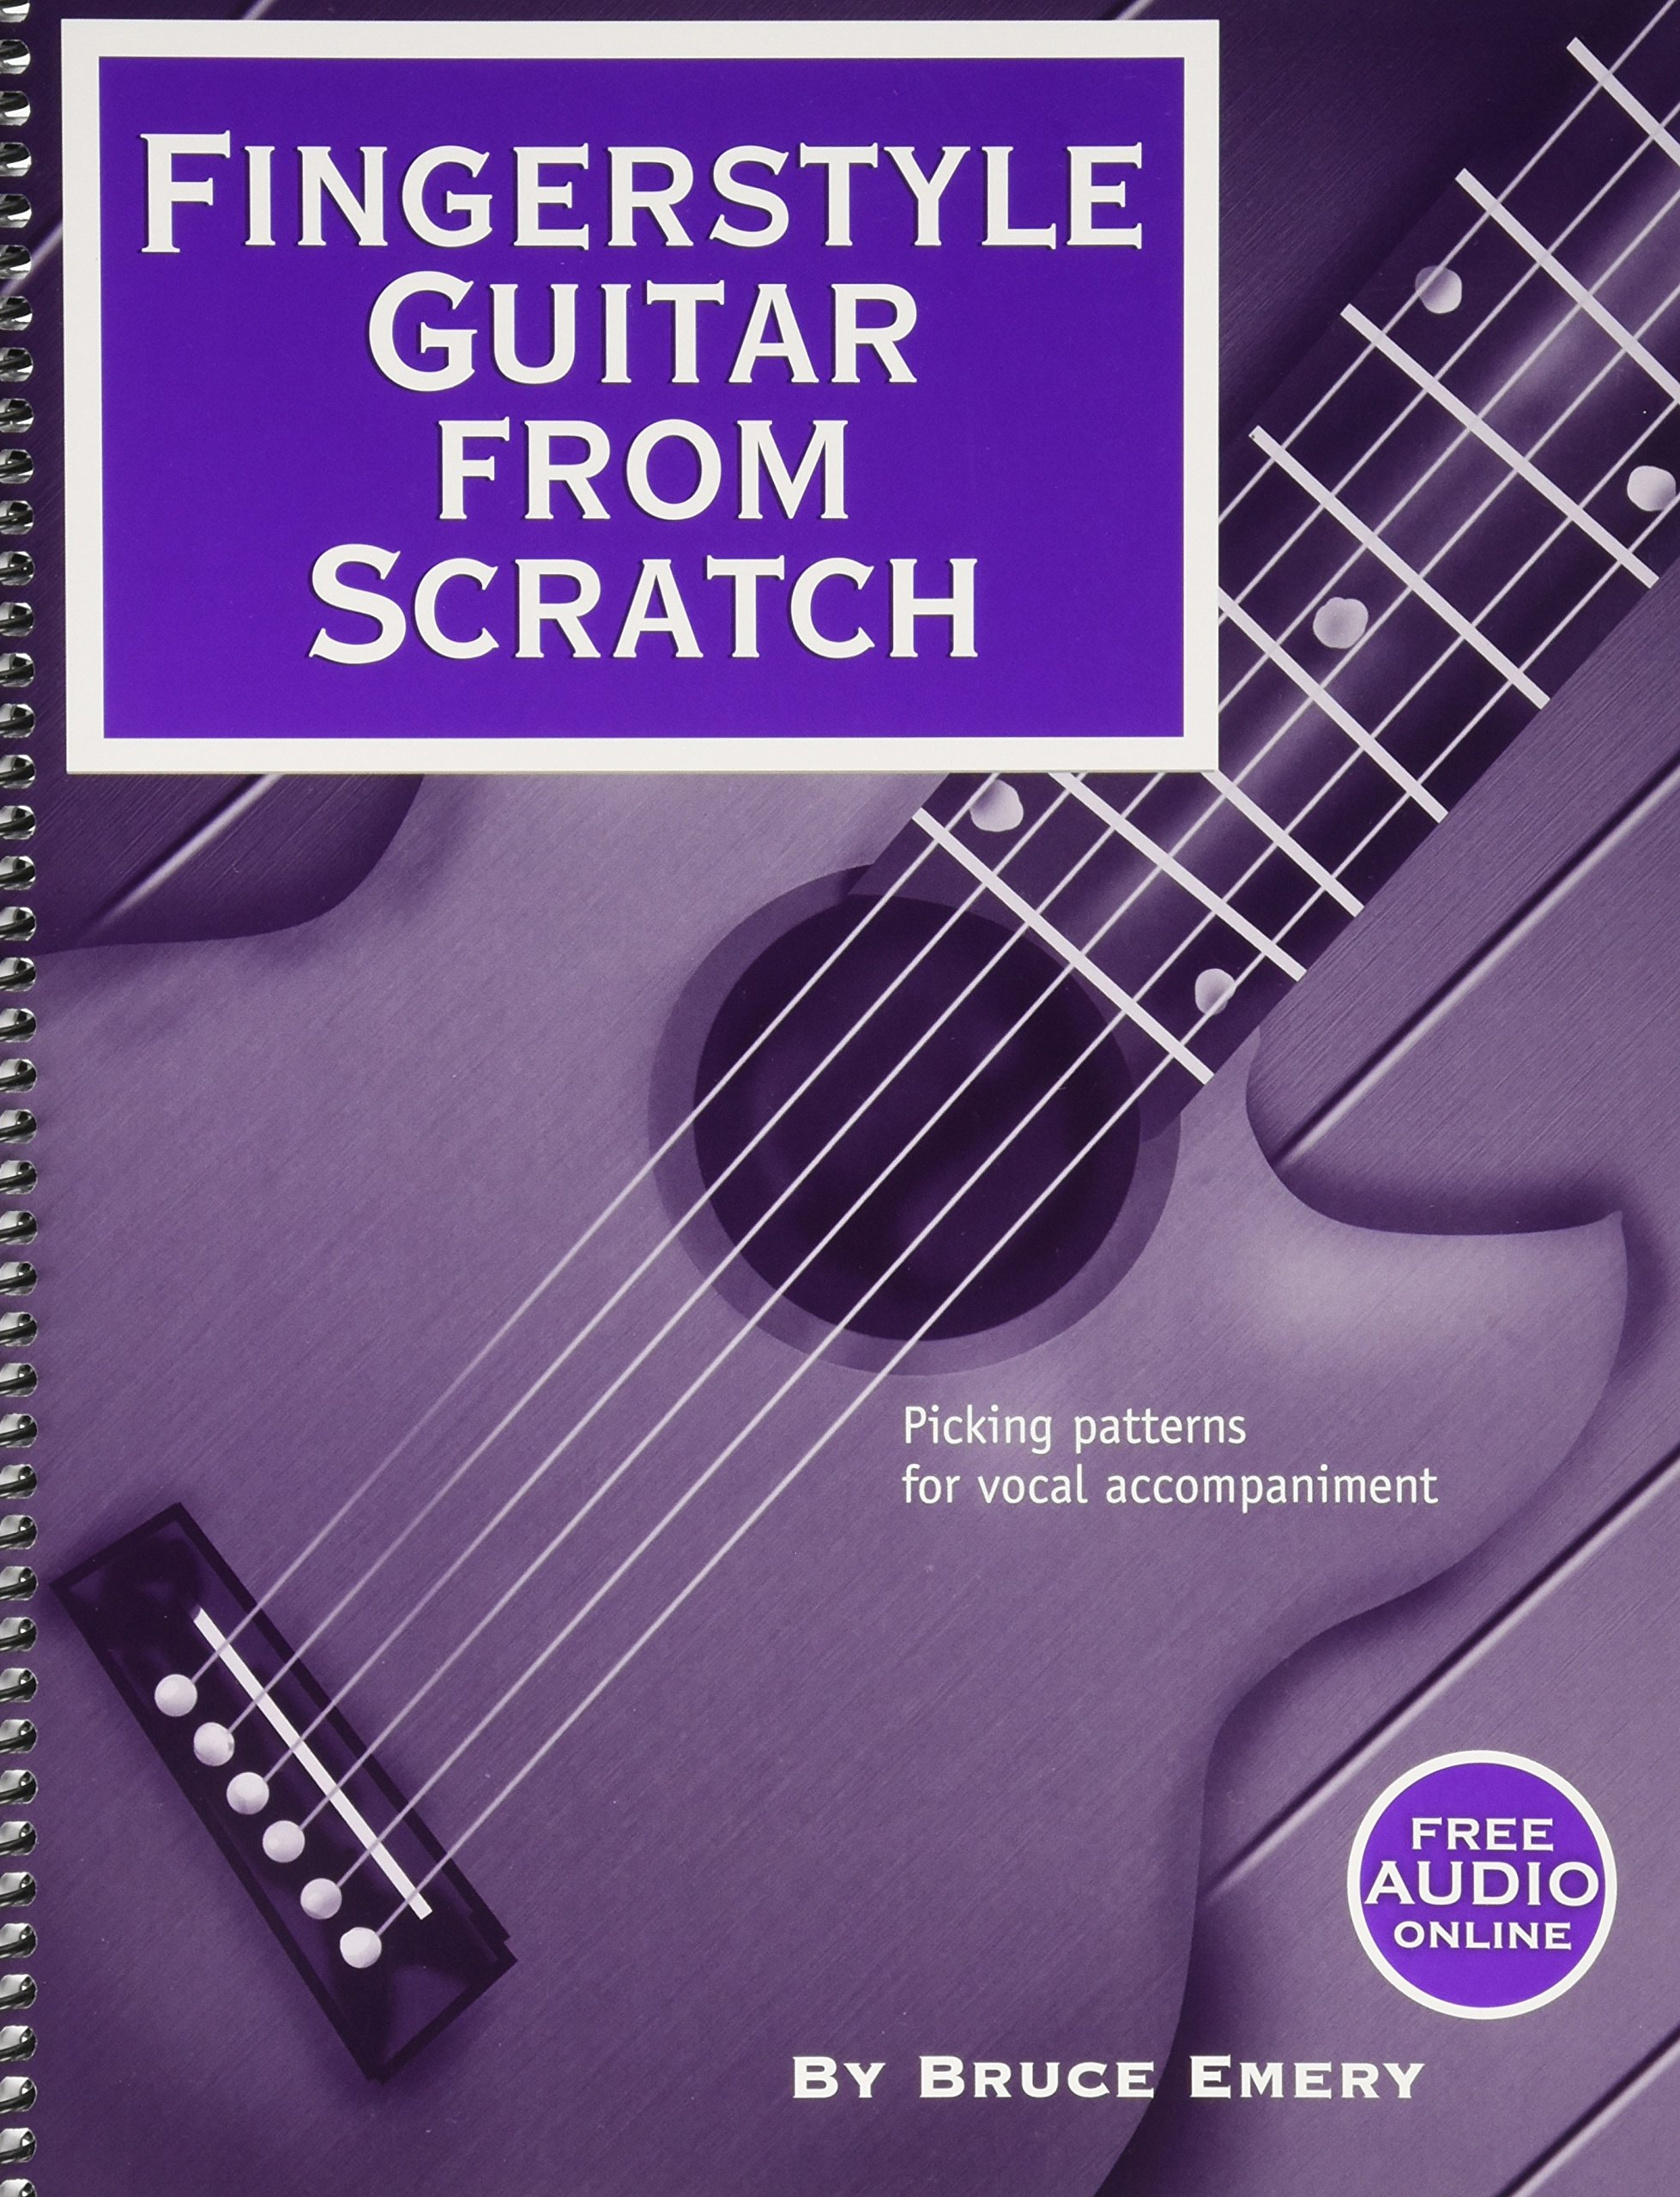 Fingerstyle Guitar From Scratch Picking Patterns For Vocal